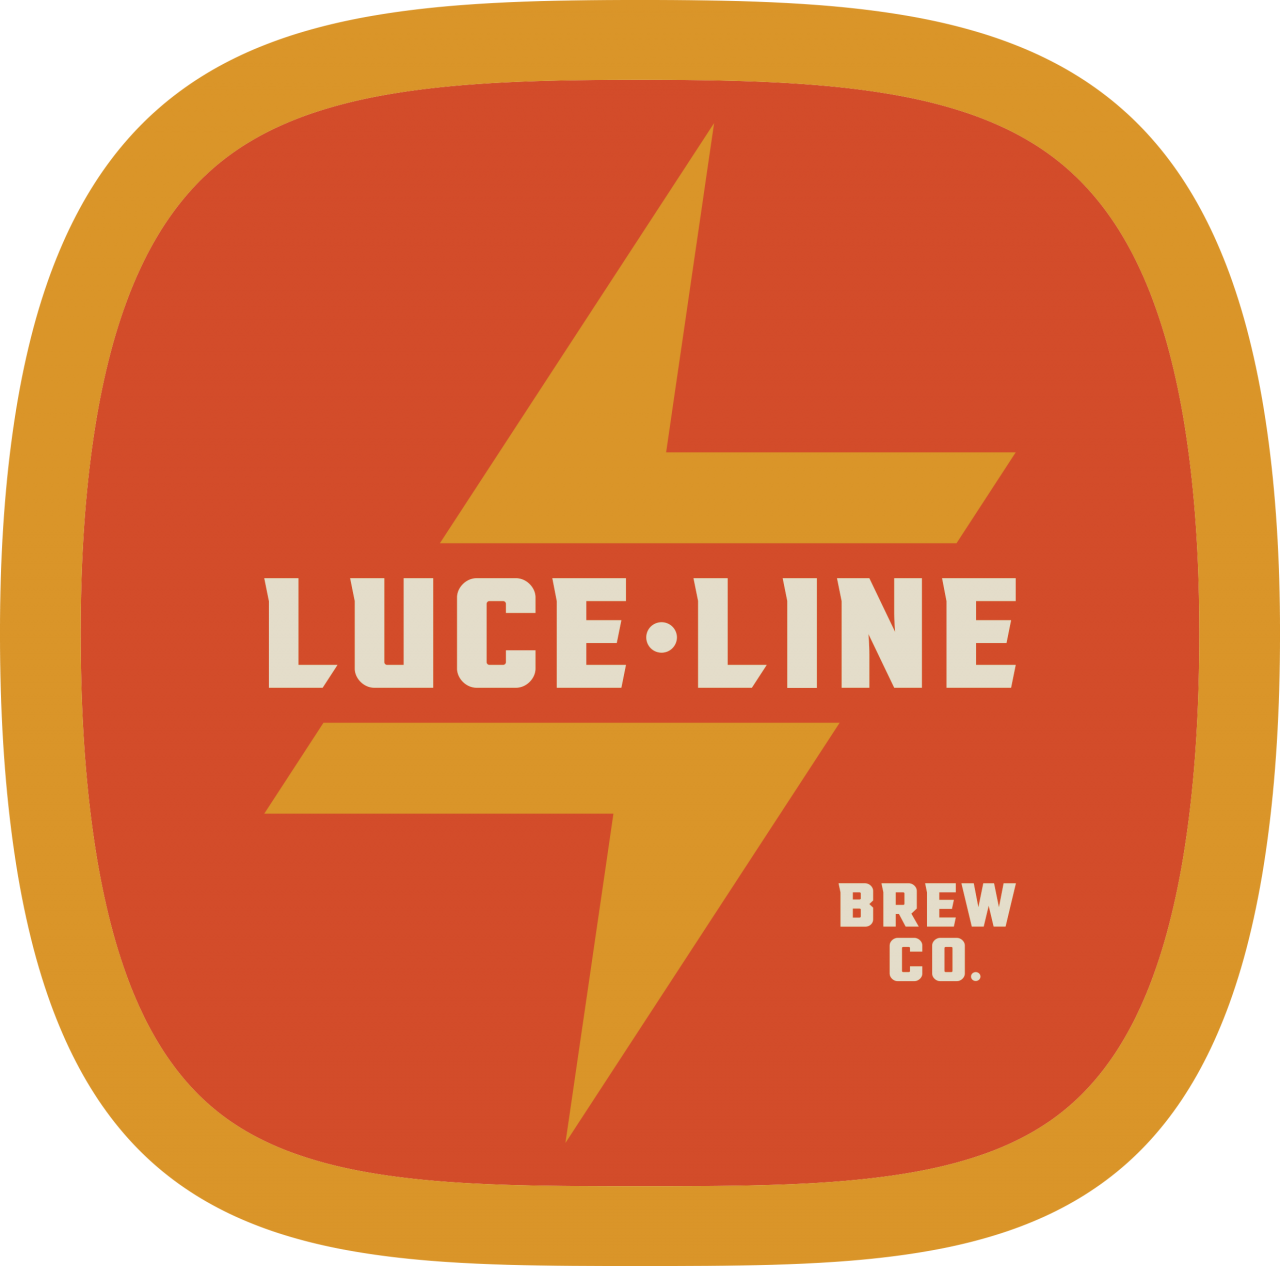 https://www.mncraftbrew.org/wp-content/uploads/2020/11/Luce-Line-Logo-1280x1266.png